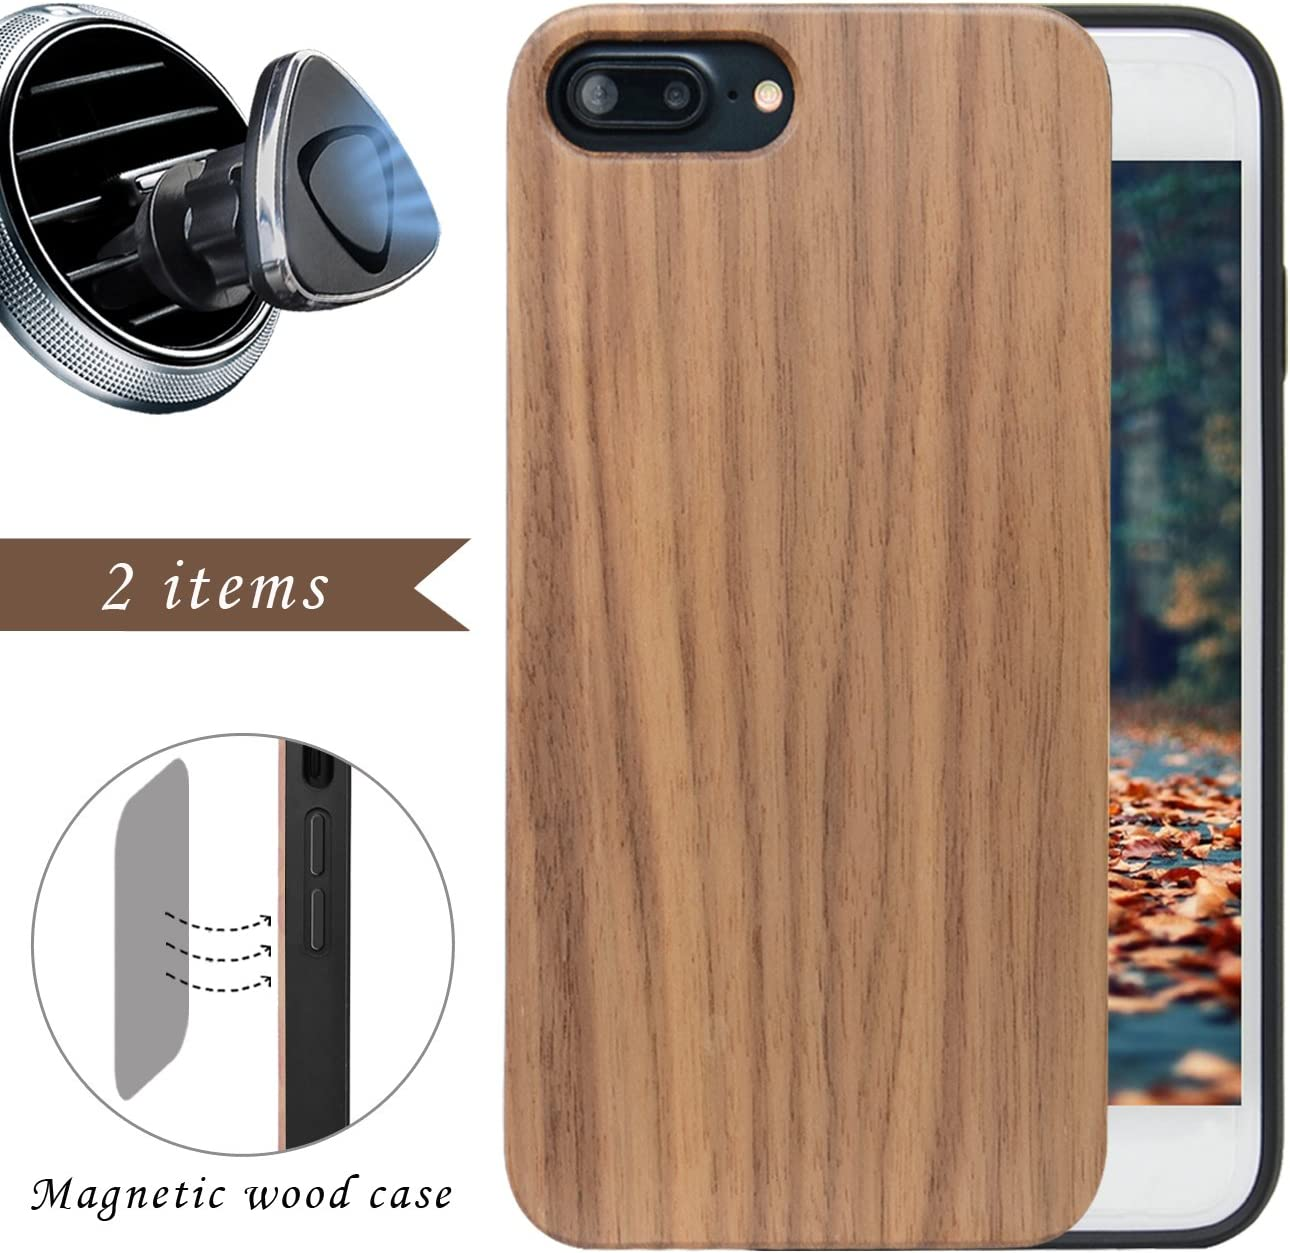 "iProductsUS Wood Phone Case for Men Compatible with iPhone 8 Plus, 7 Plus, 6 Plus (ONLY) and Magnetic Mount - Walnut Blank Cases,Built in Metal Plate,TPU Rubber Protective and Shockproof Cover (5.5"")"